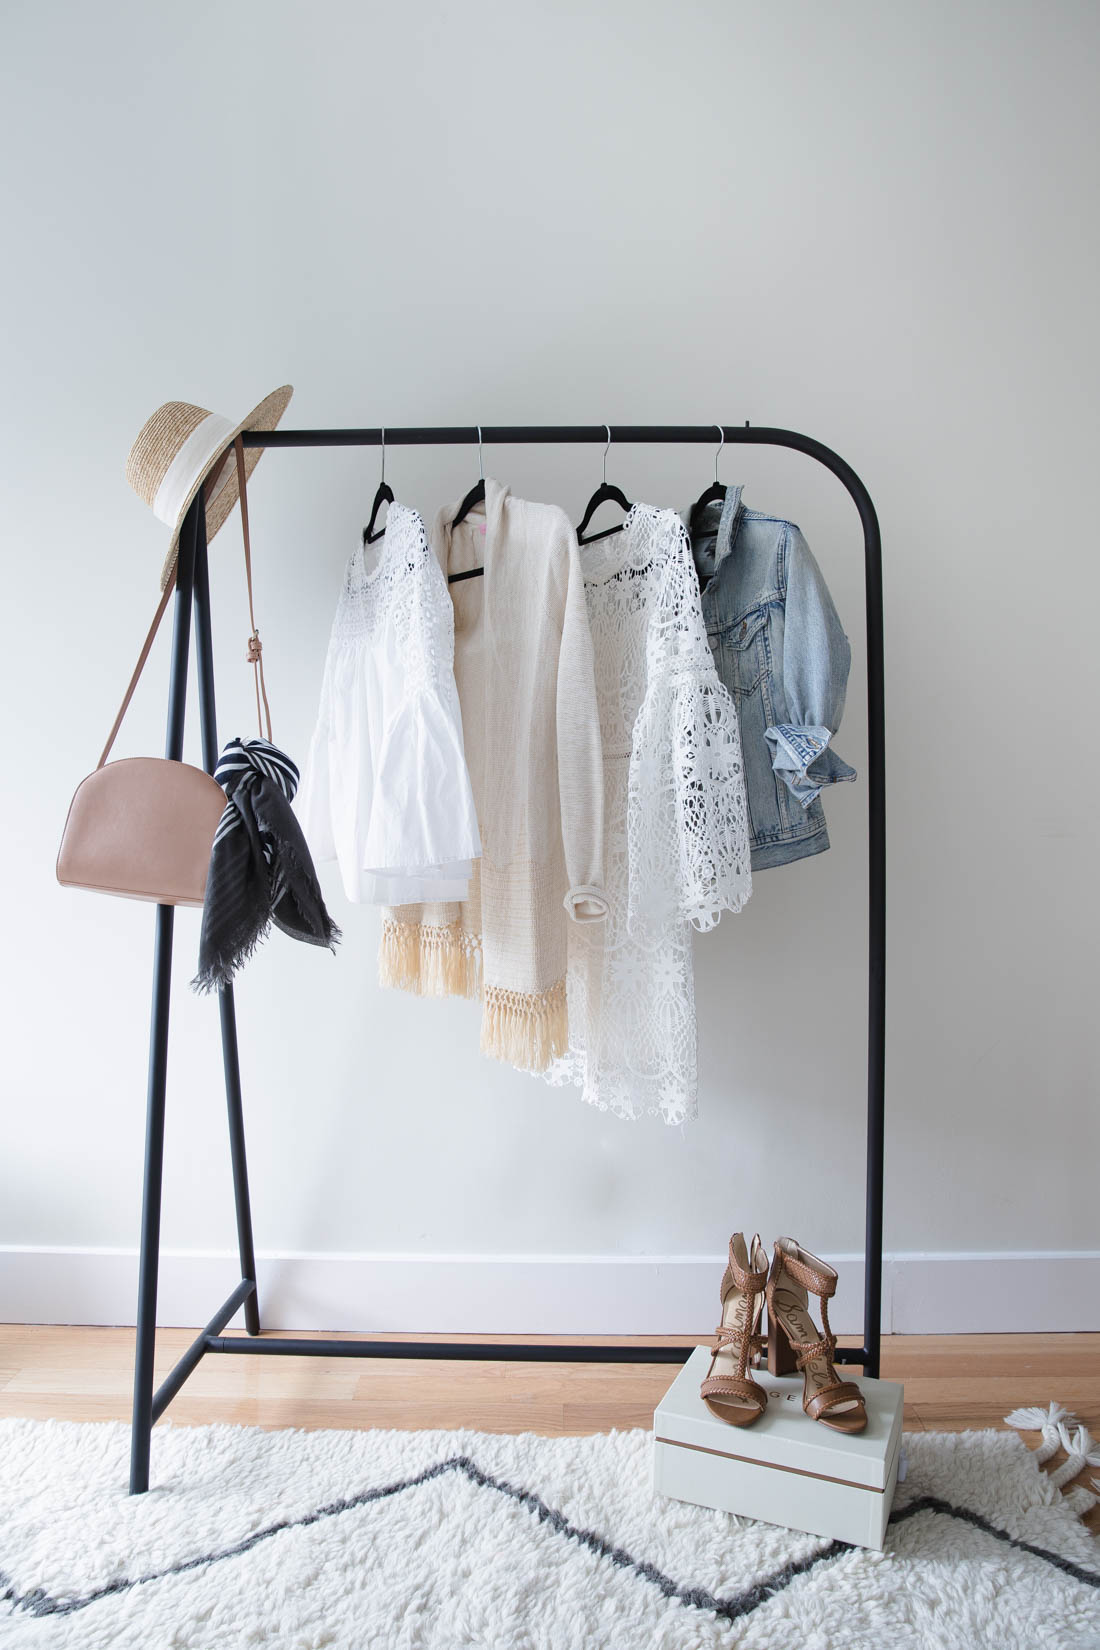 rod iron wardrobe rack